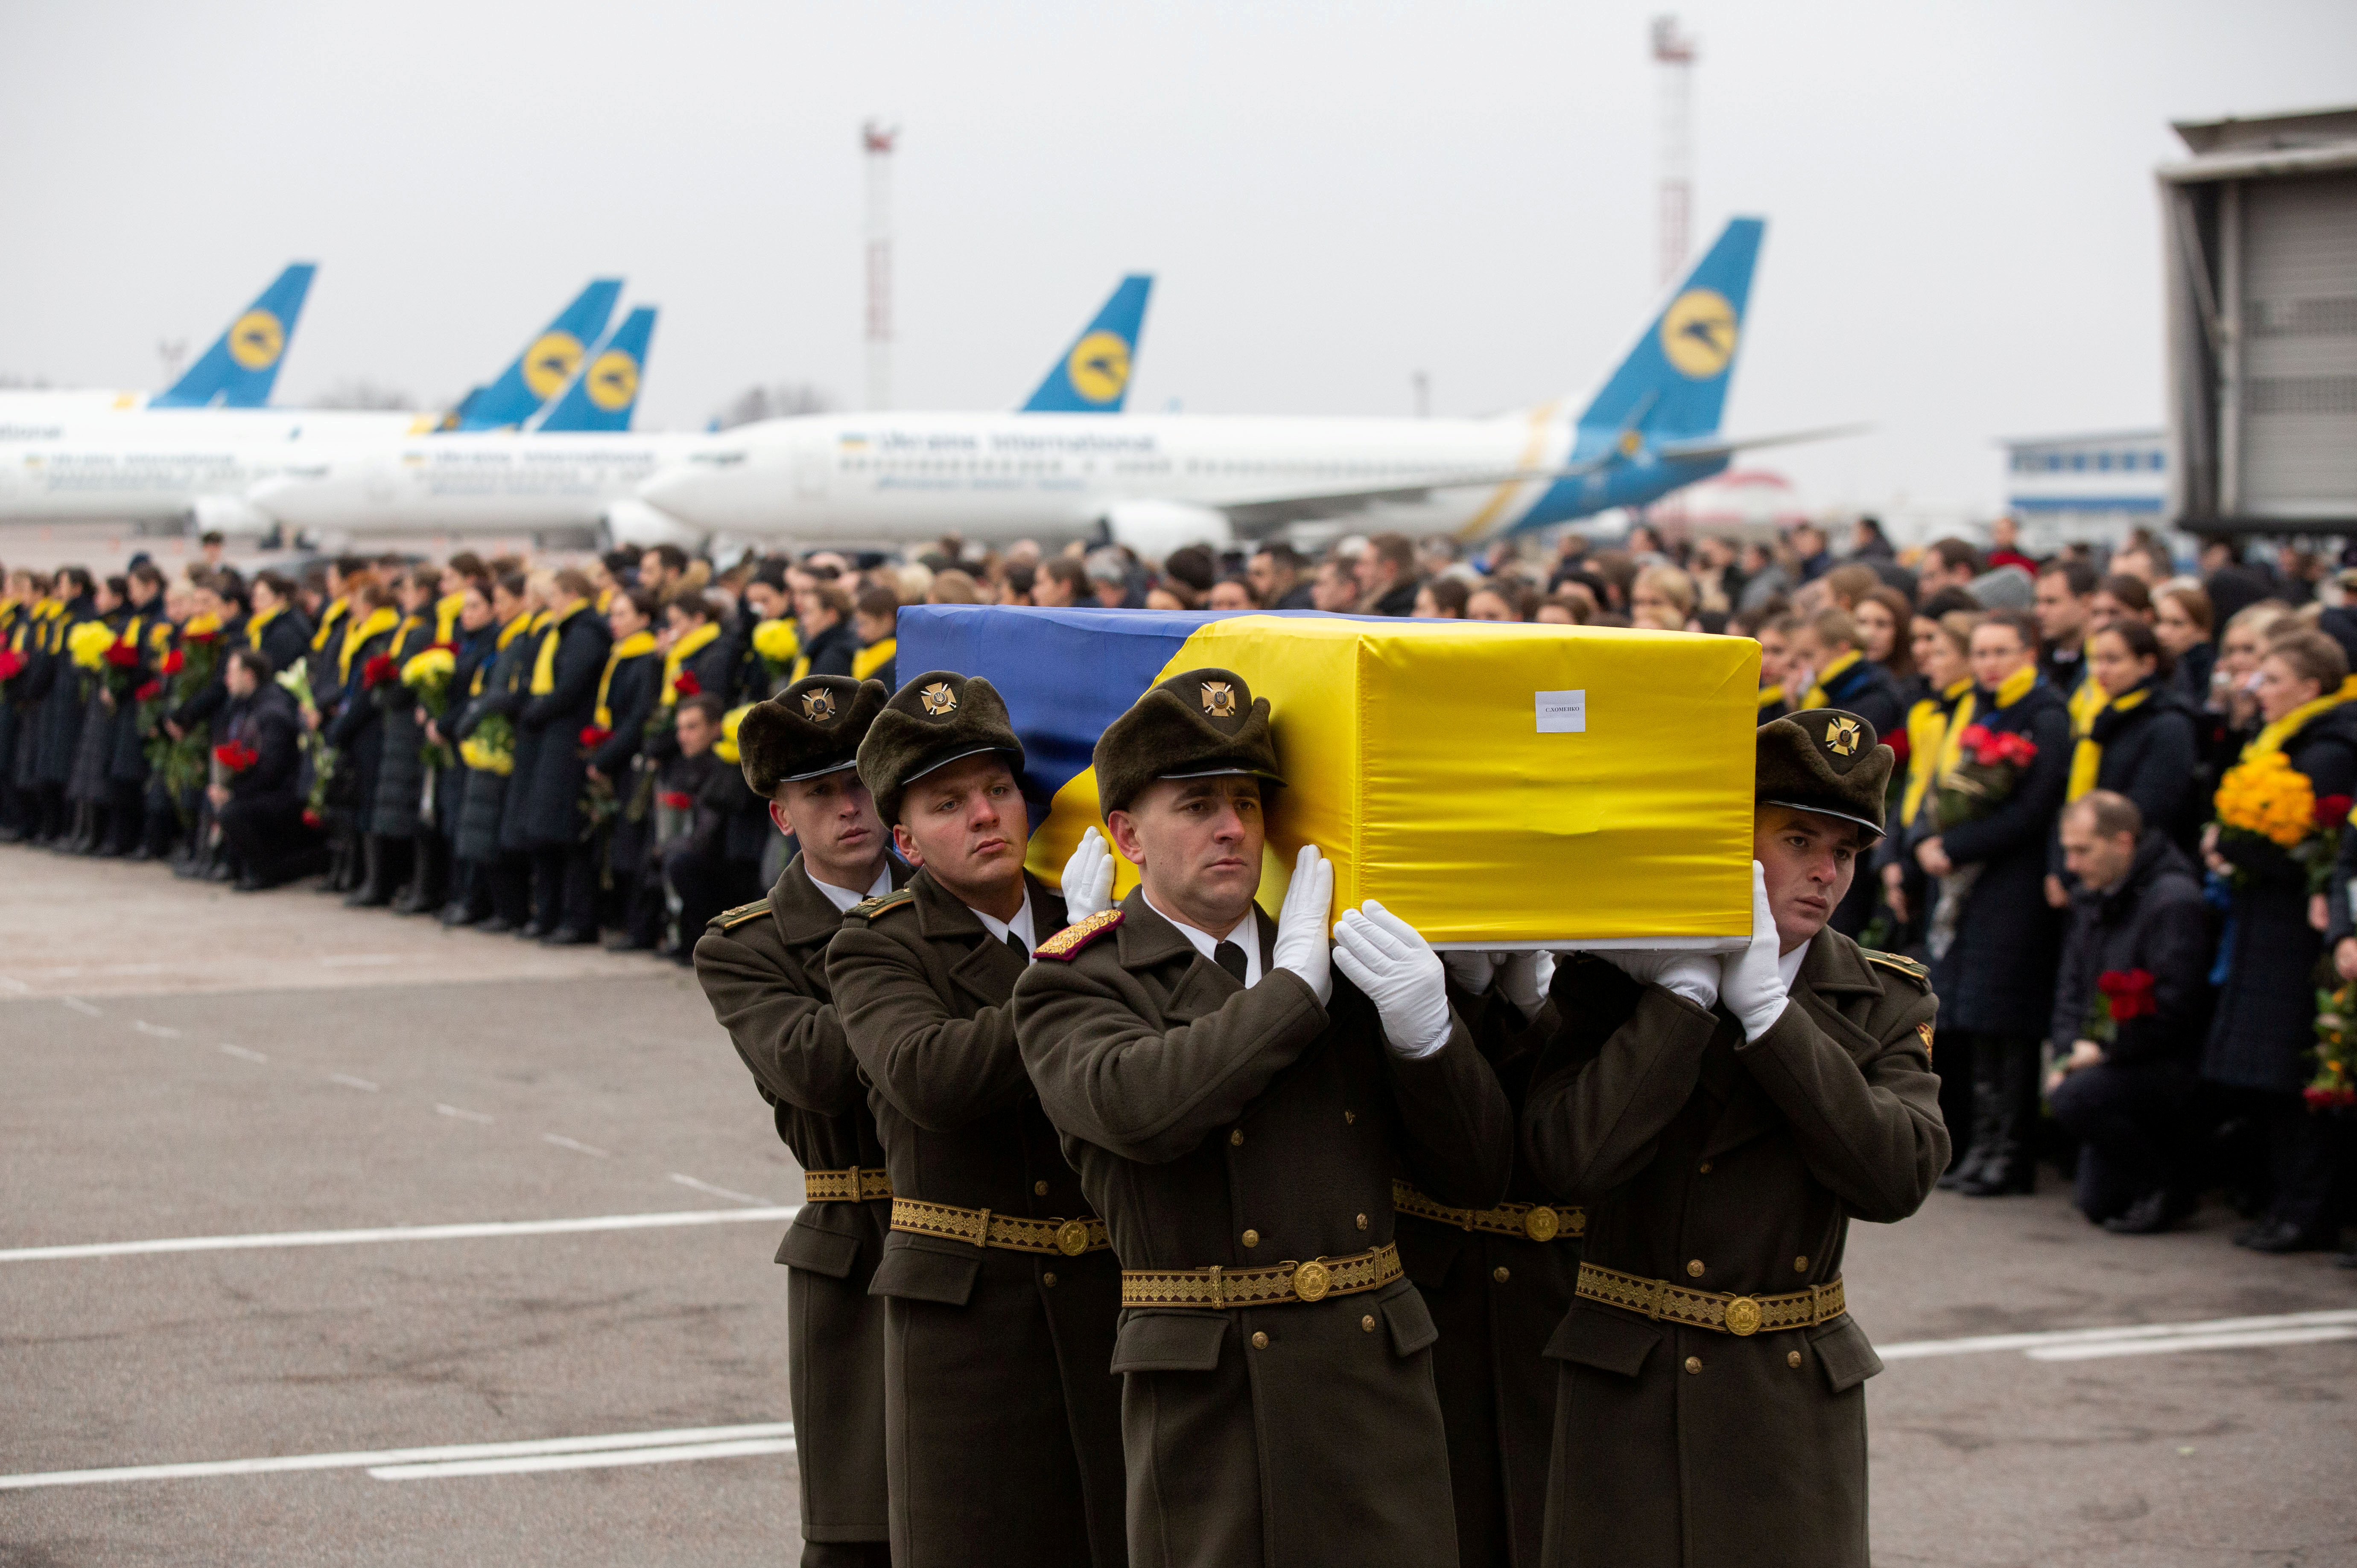 Soldiers carry a coffin containing the remains of one of the eleven Ukrainian victims of the Ukraine International Airlines flight 752 plane disaster, at Boryspil International Airport, outside Kiev, Ukraine, January 19, 2020. Ukrainian Presidential Press Service/Handout via REUTERS